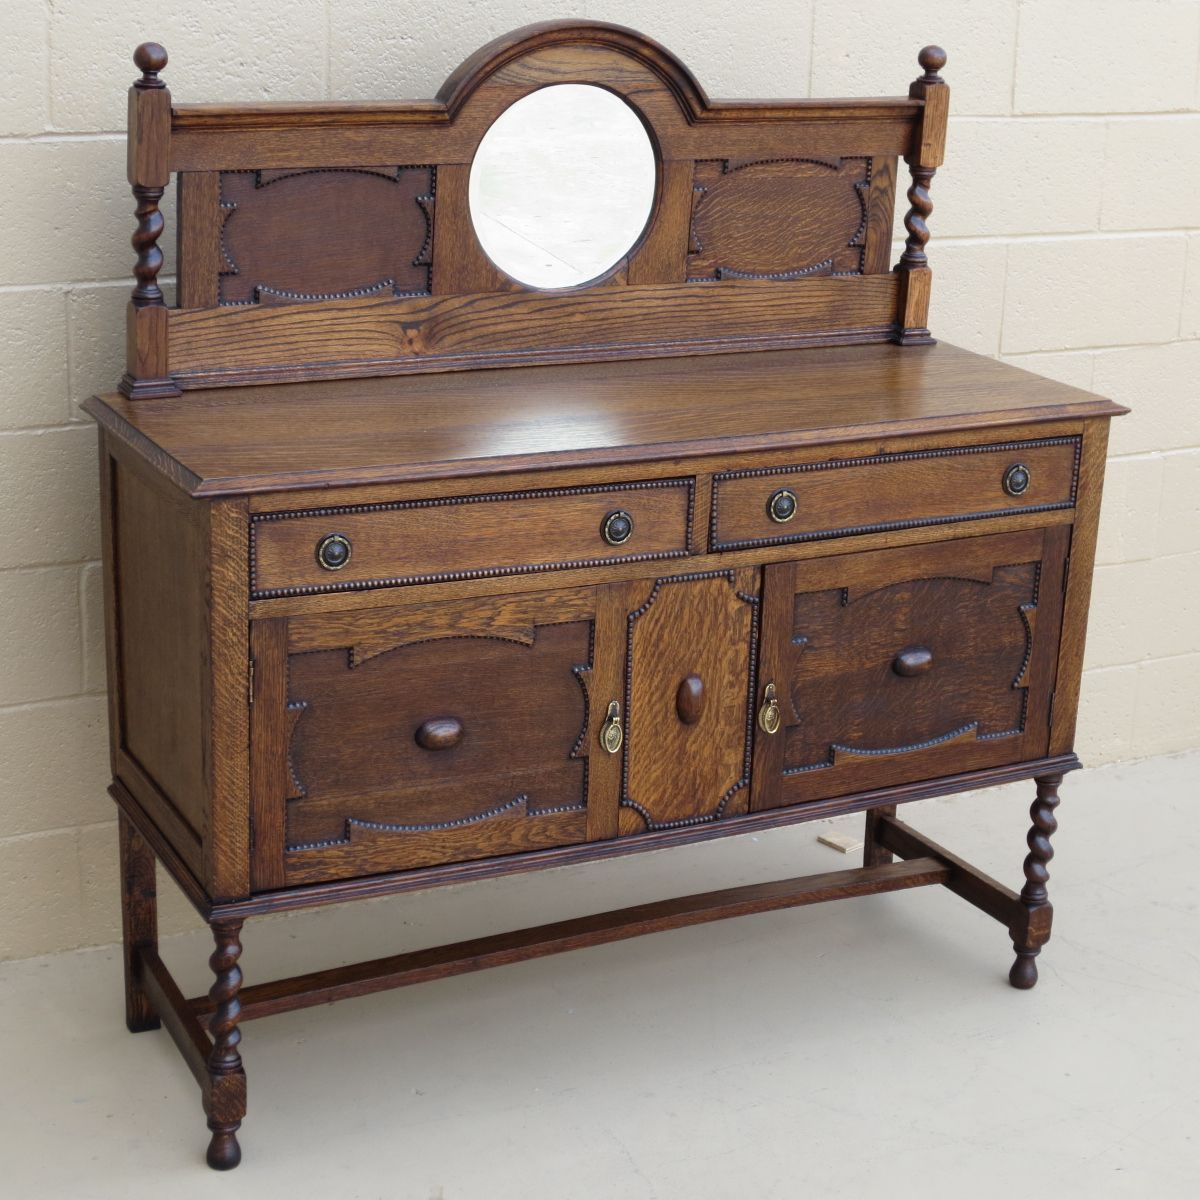 Antique sideboard furniture english antique sideboard for Antiques decoration